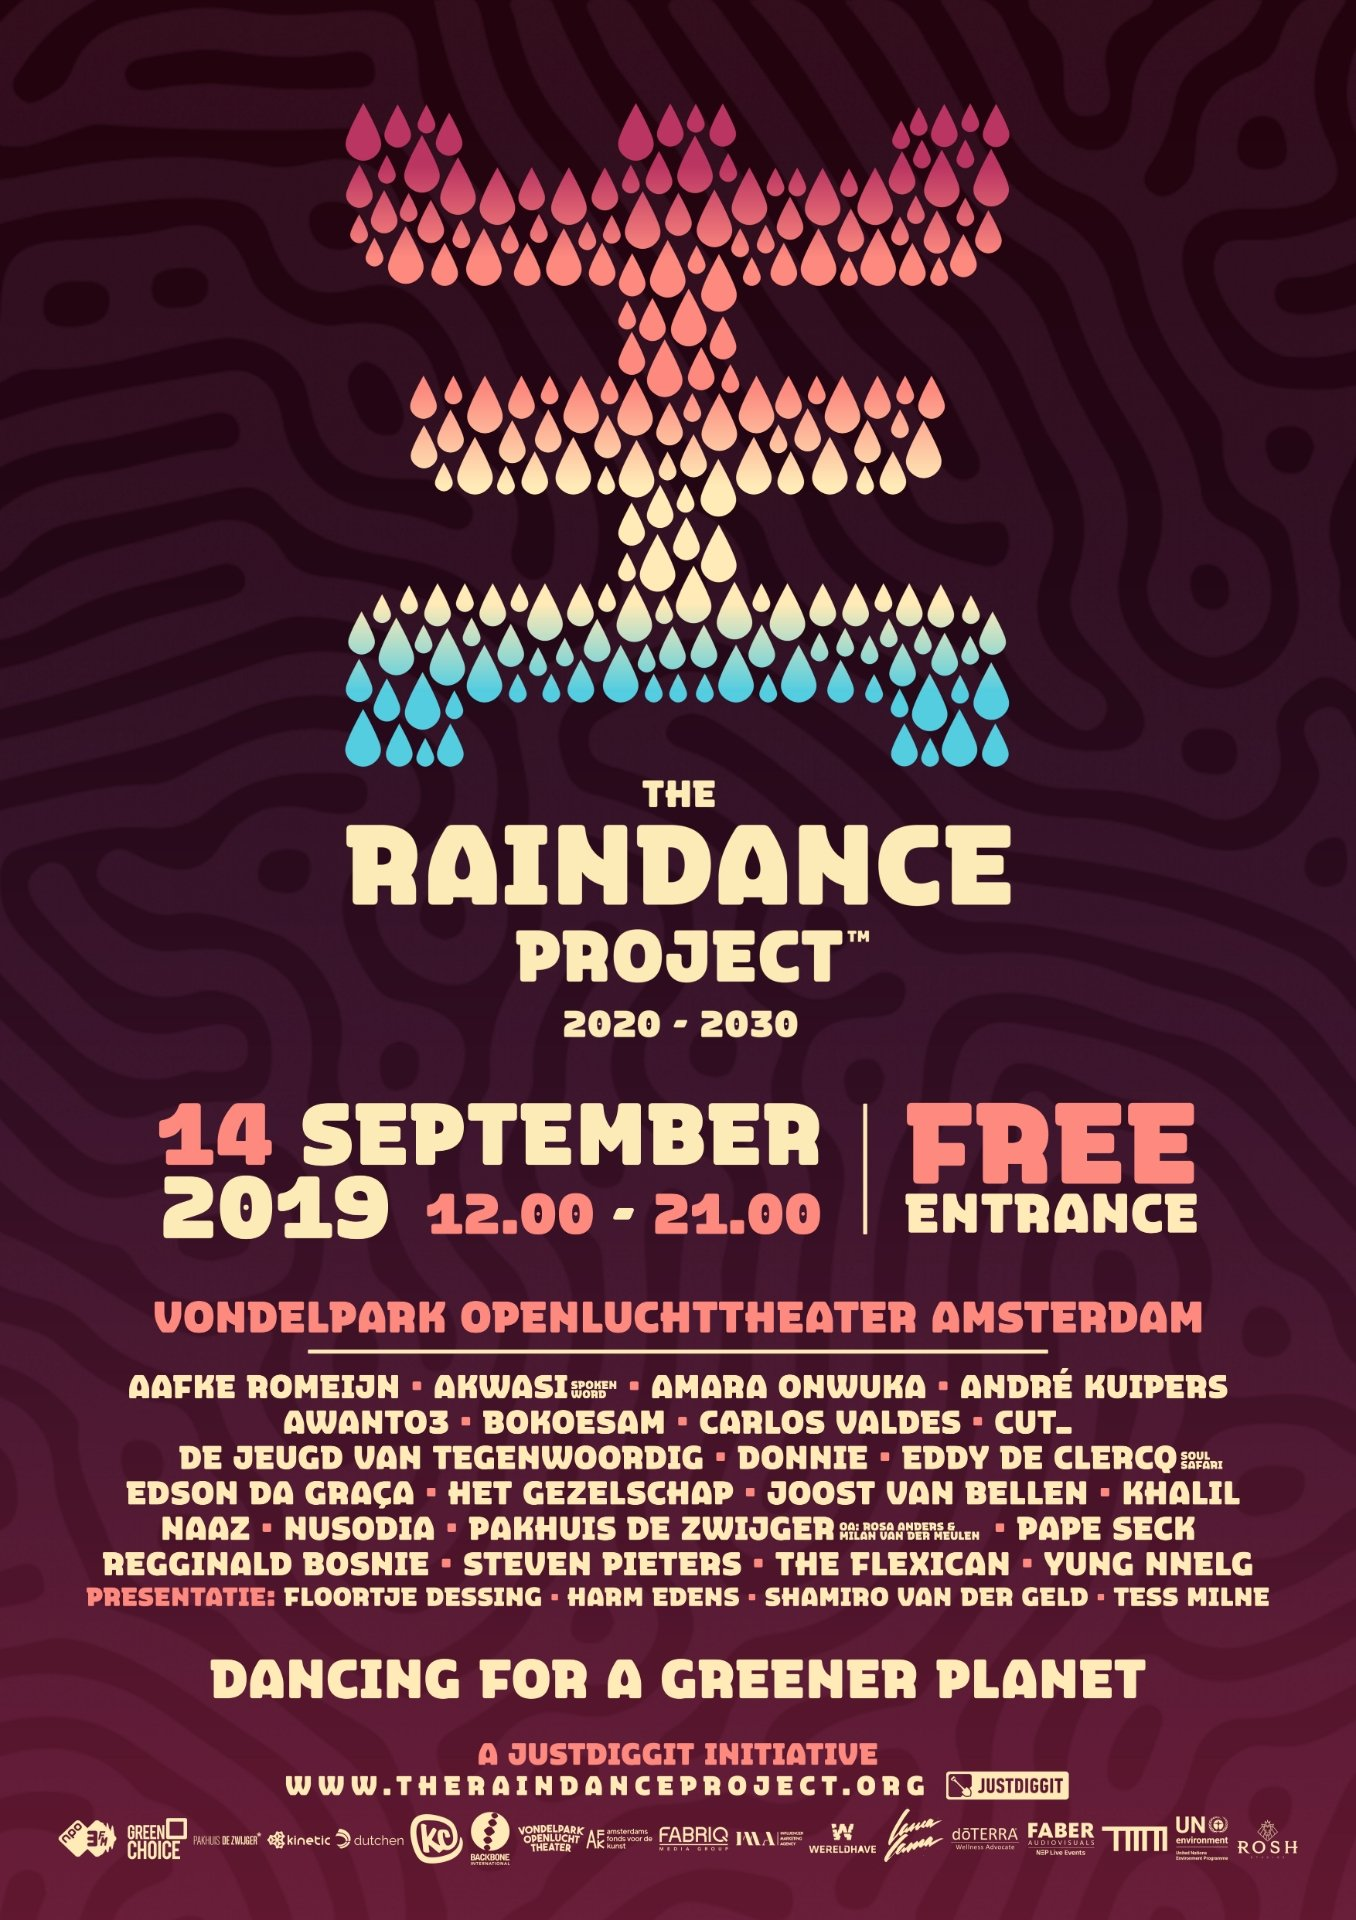 The Raindance Project